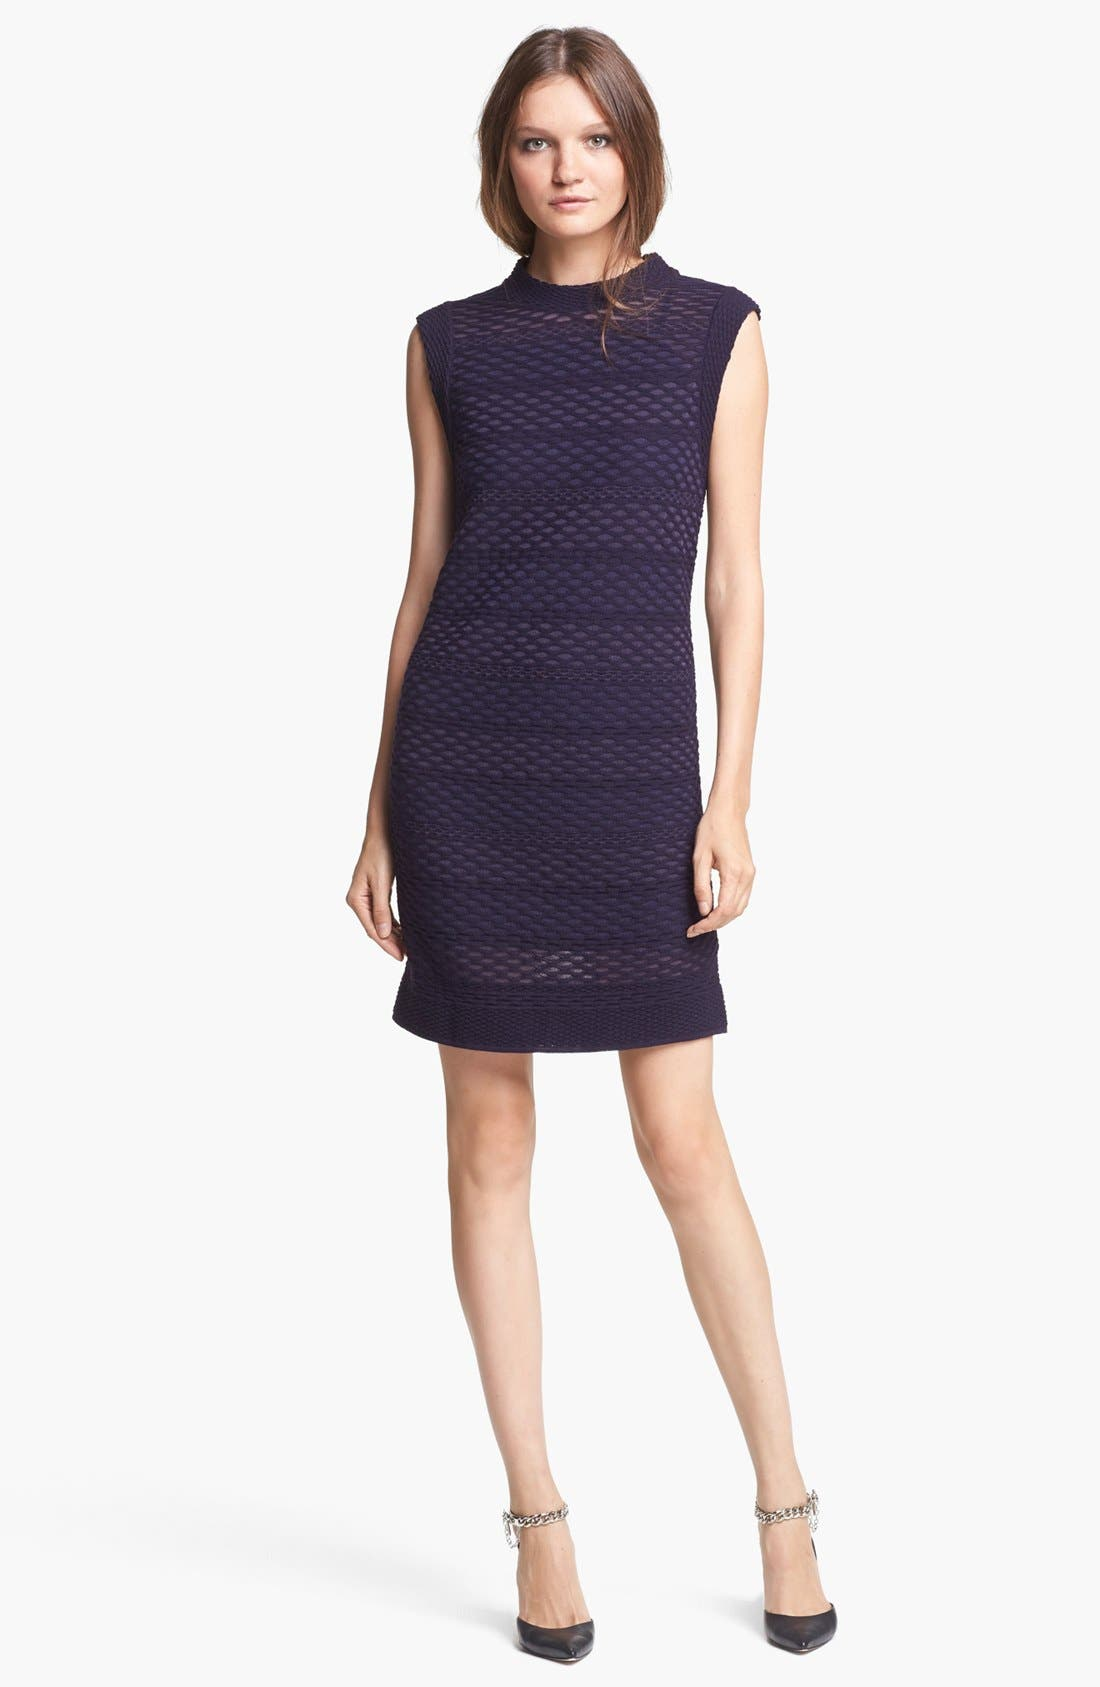 Main Image - M Missoni Honeycomb Pattern Knit Dress